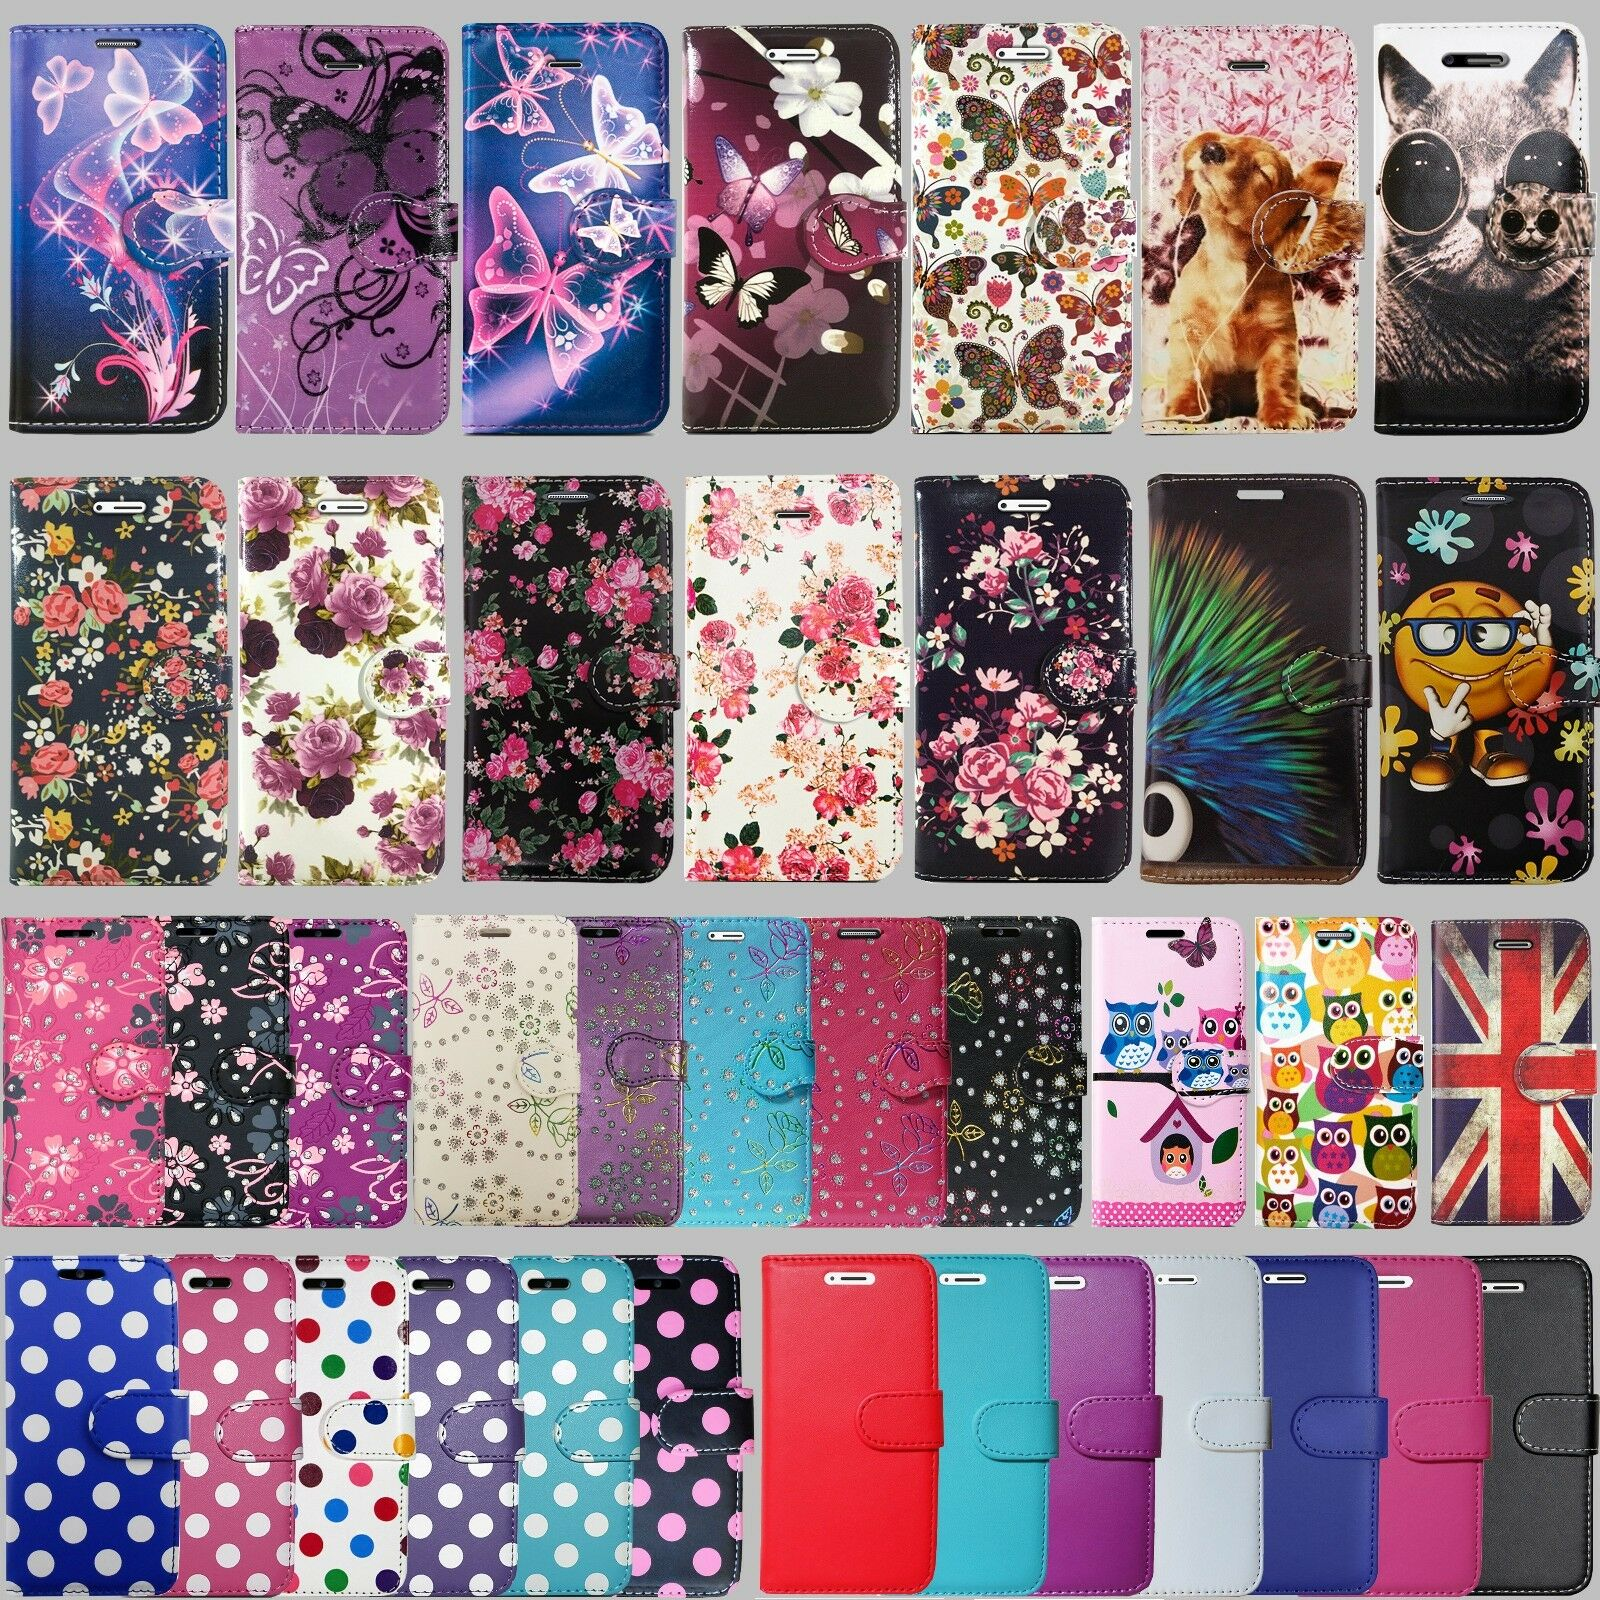 FOR SAMSUNG GALAXY A3 & A5 2015 2016 2017 PHONE CASE COVER WITH CARD SLOT INSERT